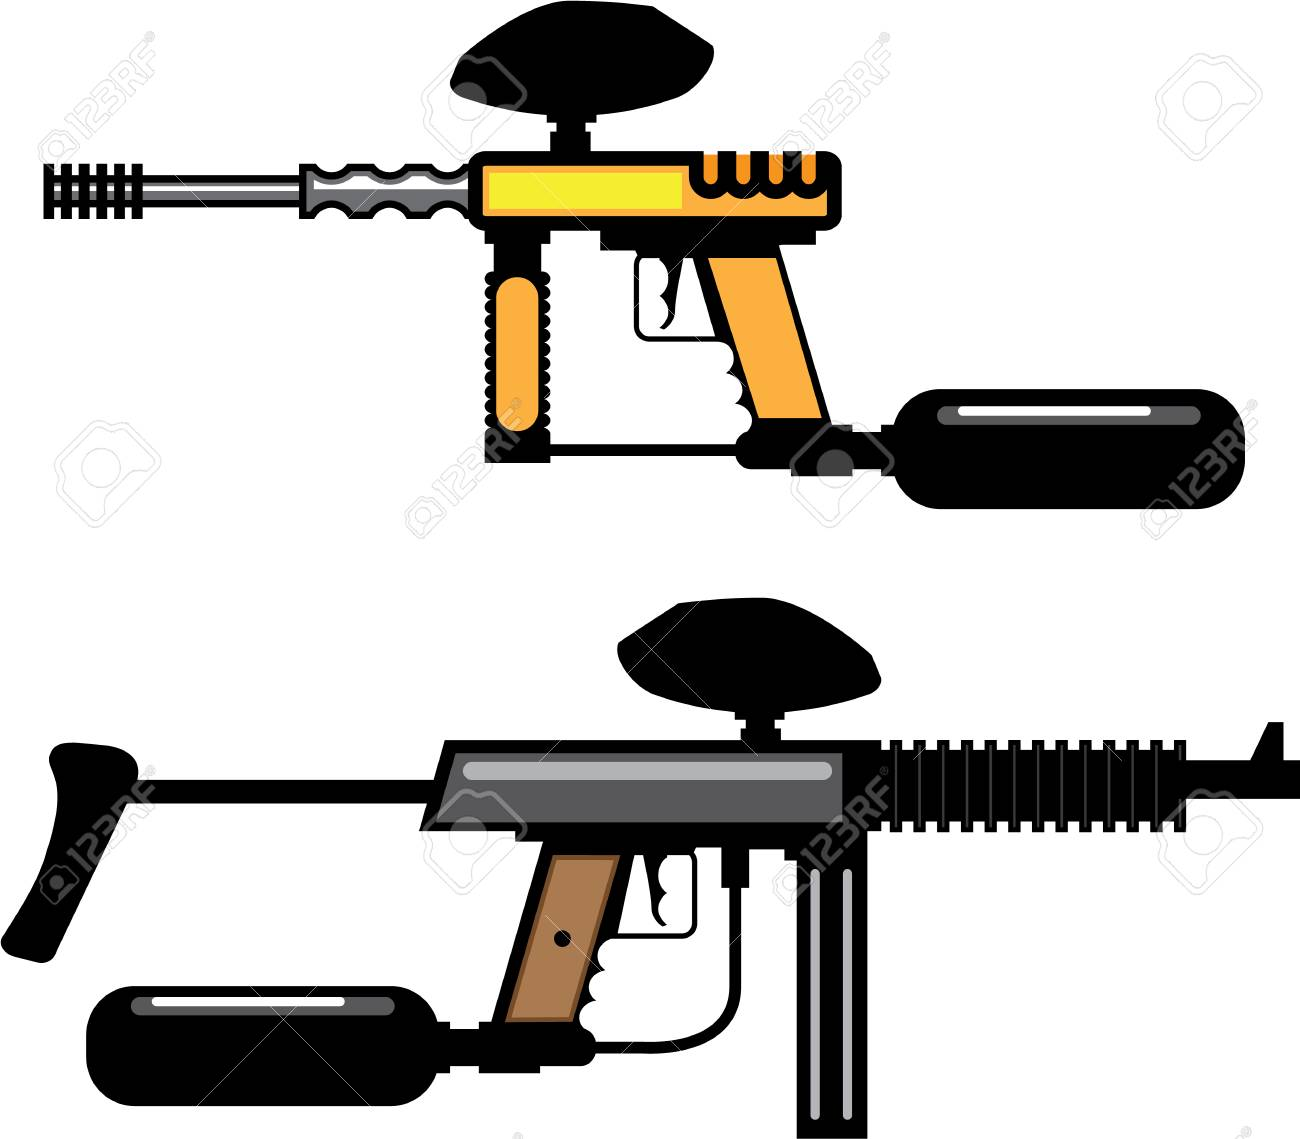 Paintball Gun Color Illustration Clip Art Simple Image Stock Photo Picture And Royalty Free Image Image 88289072